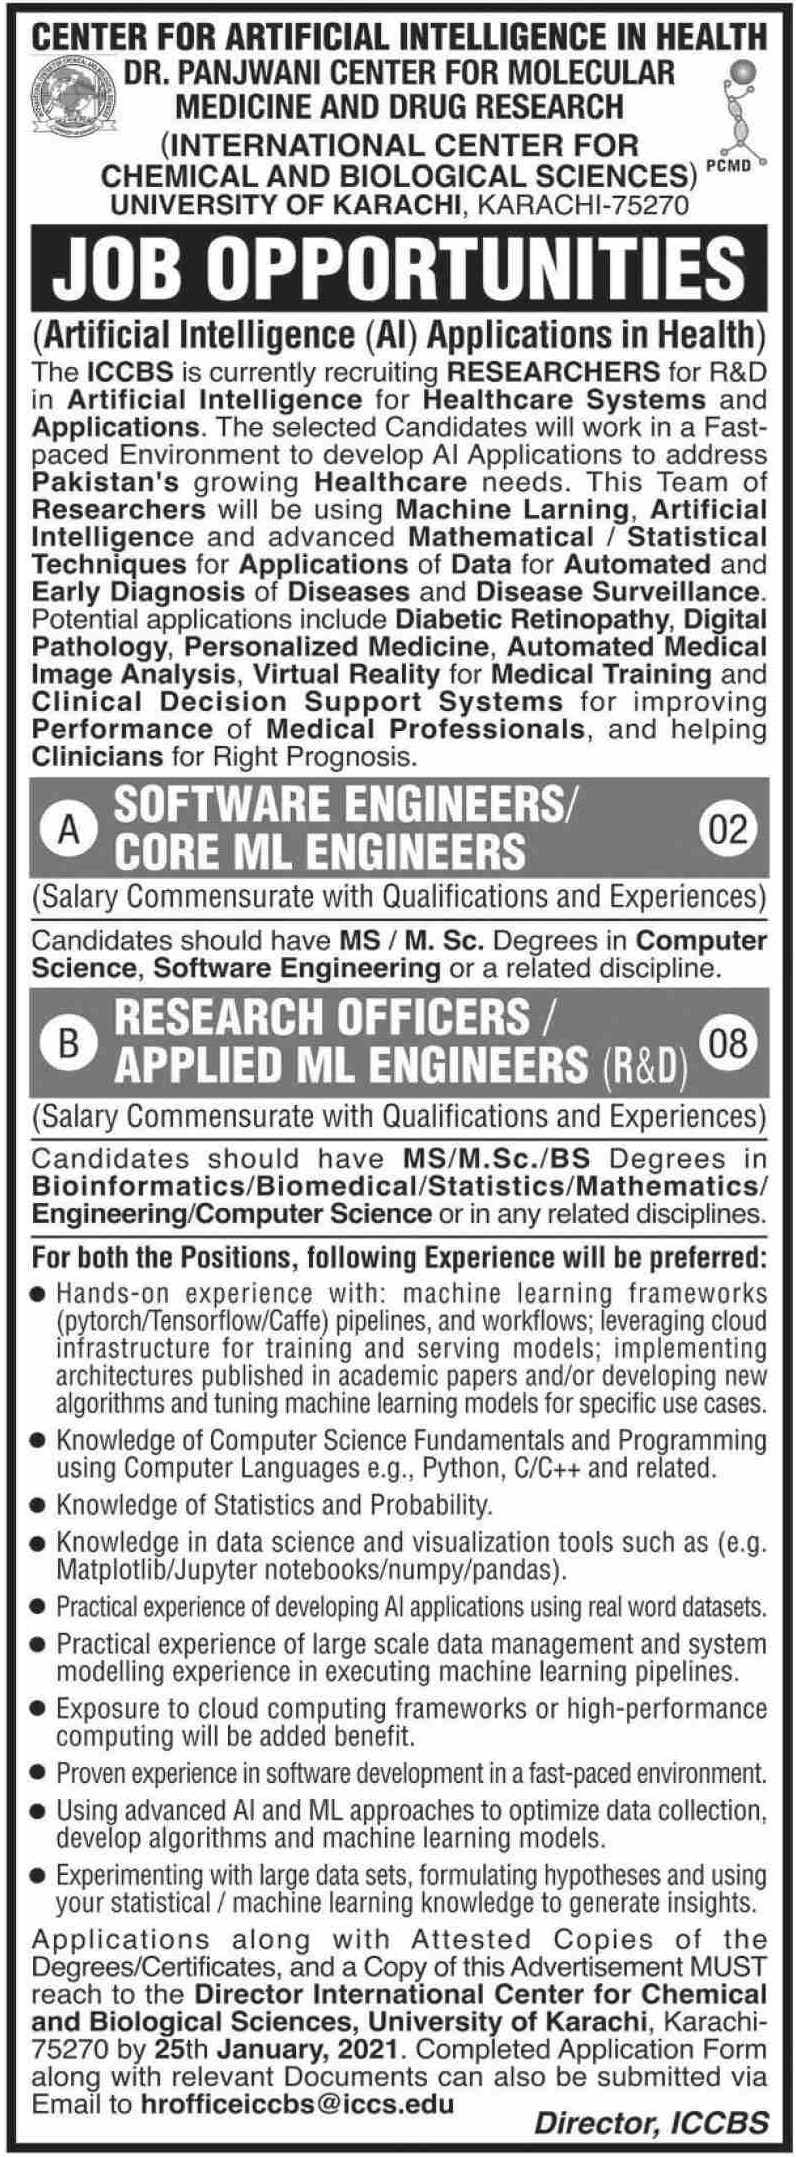 University of Karachi Jobs January 2021